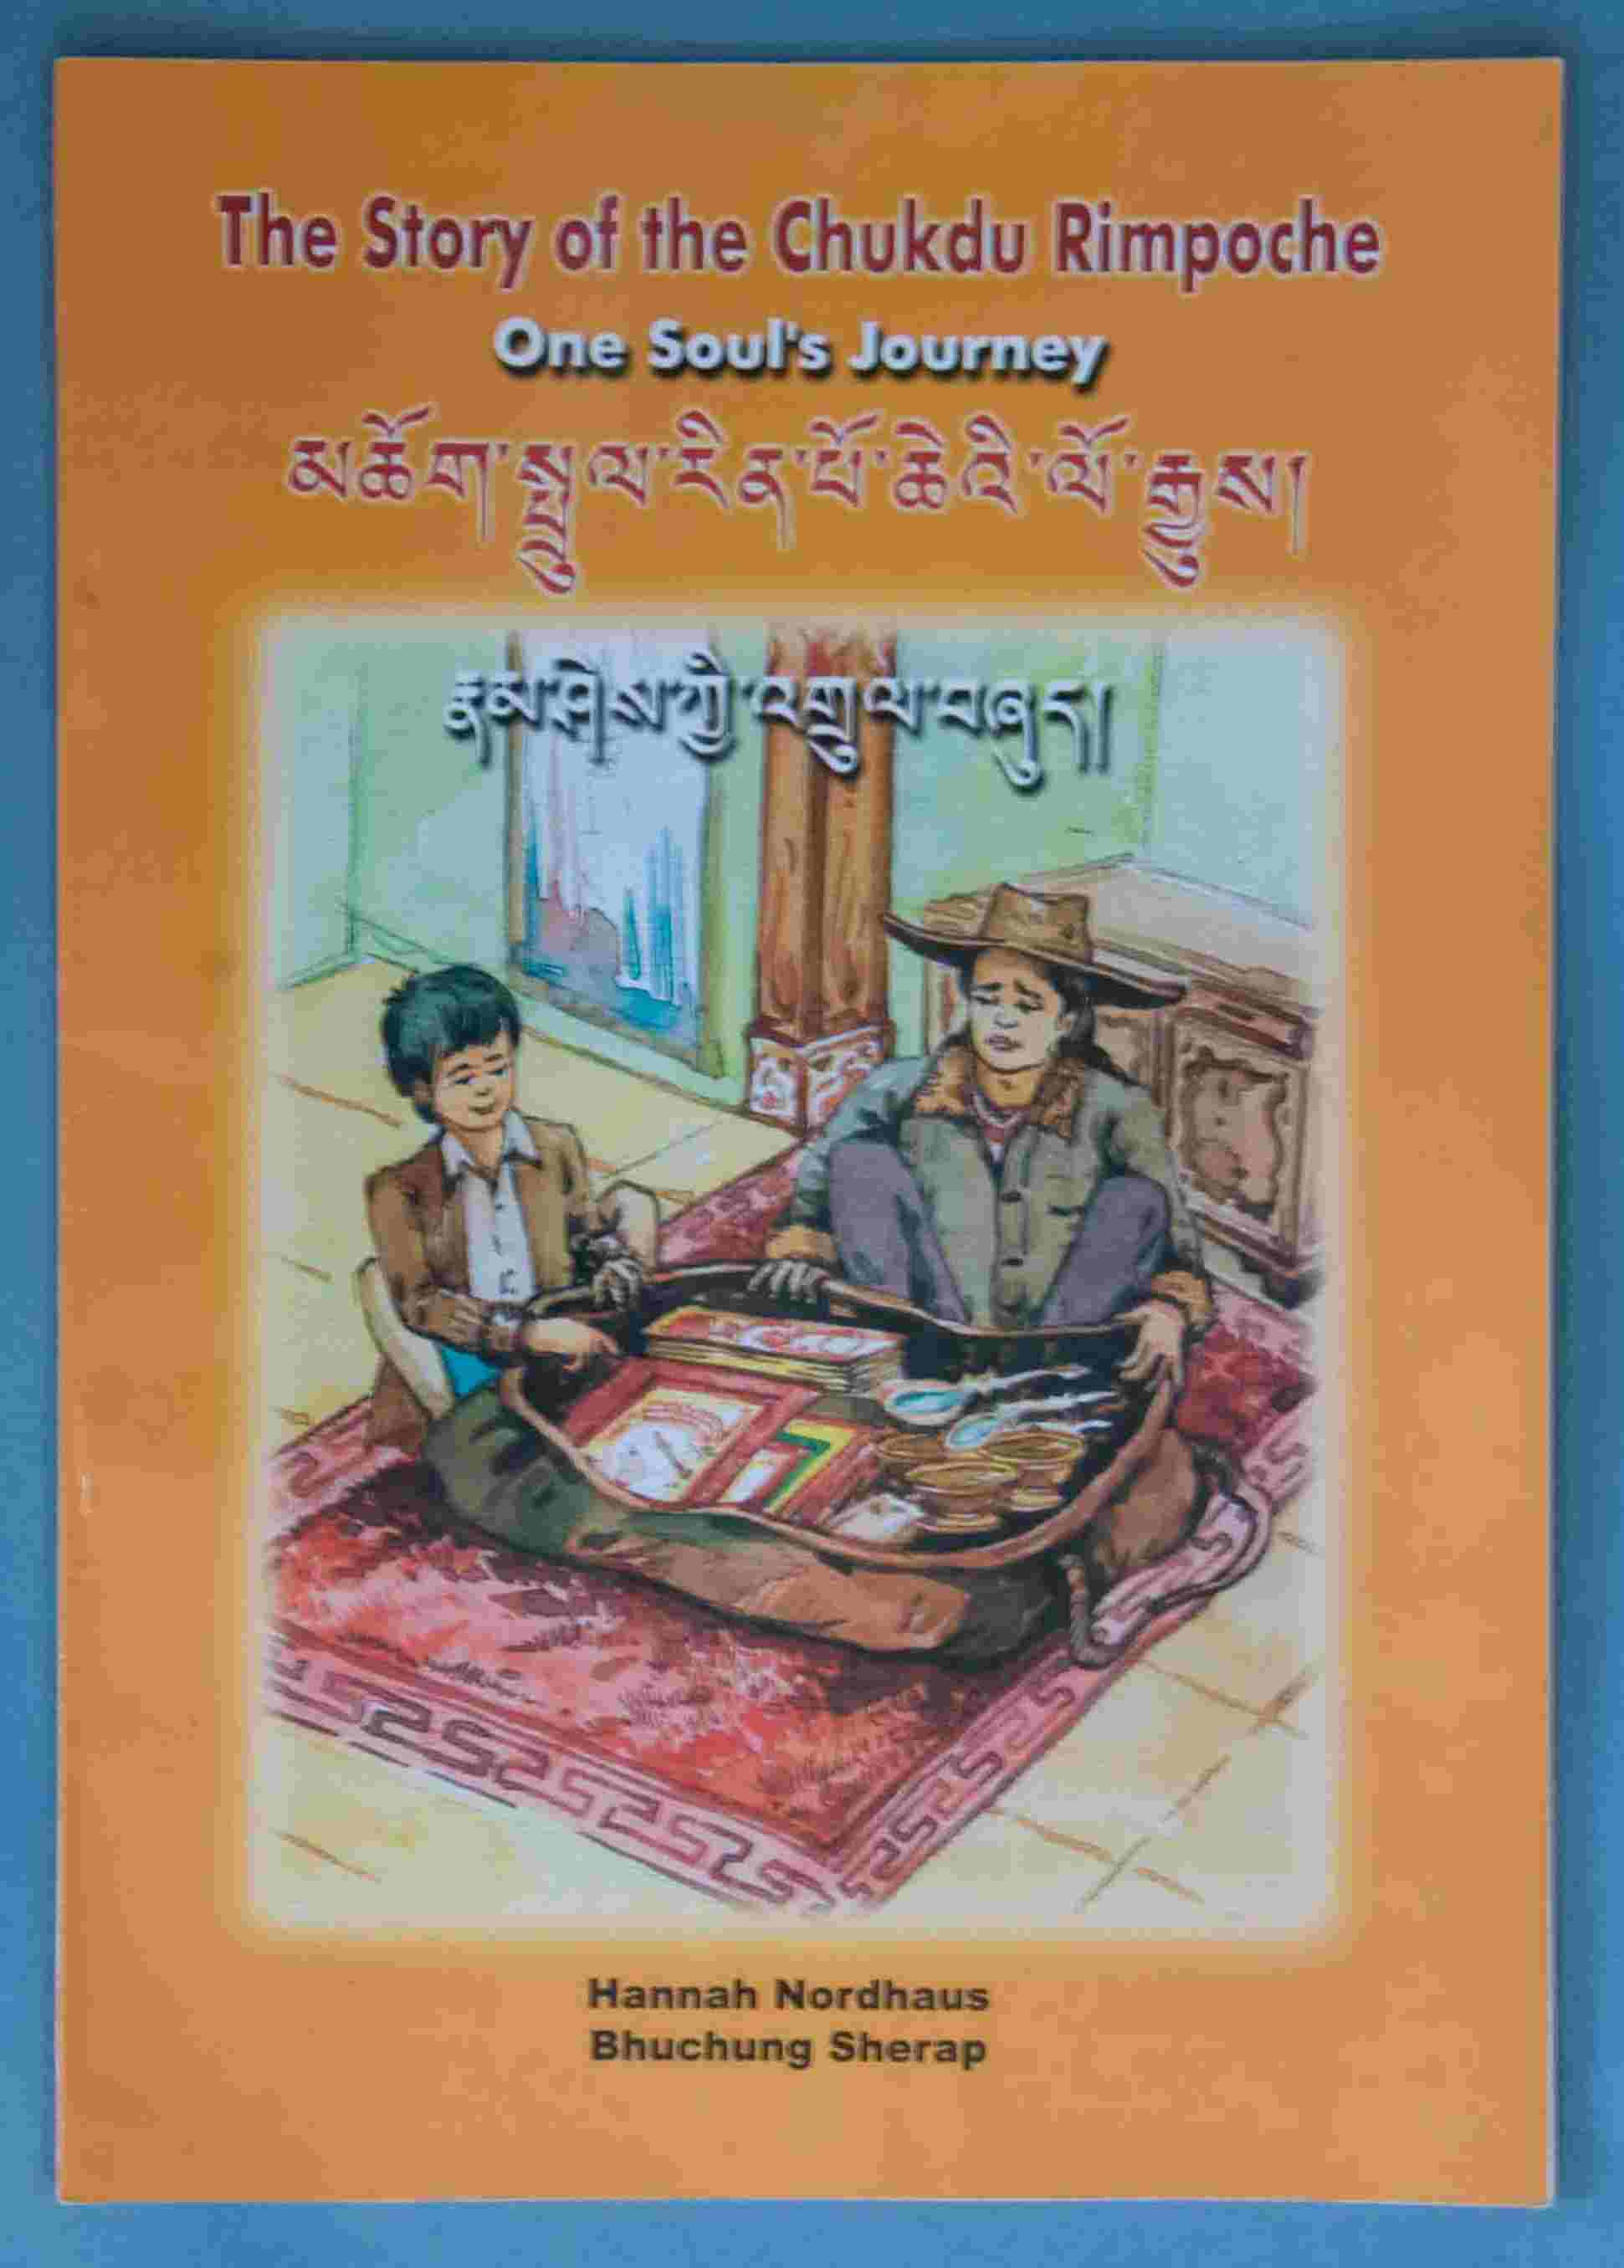 The story of the Chukdu Rimpoche